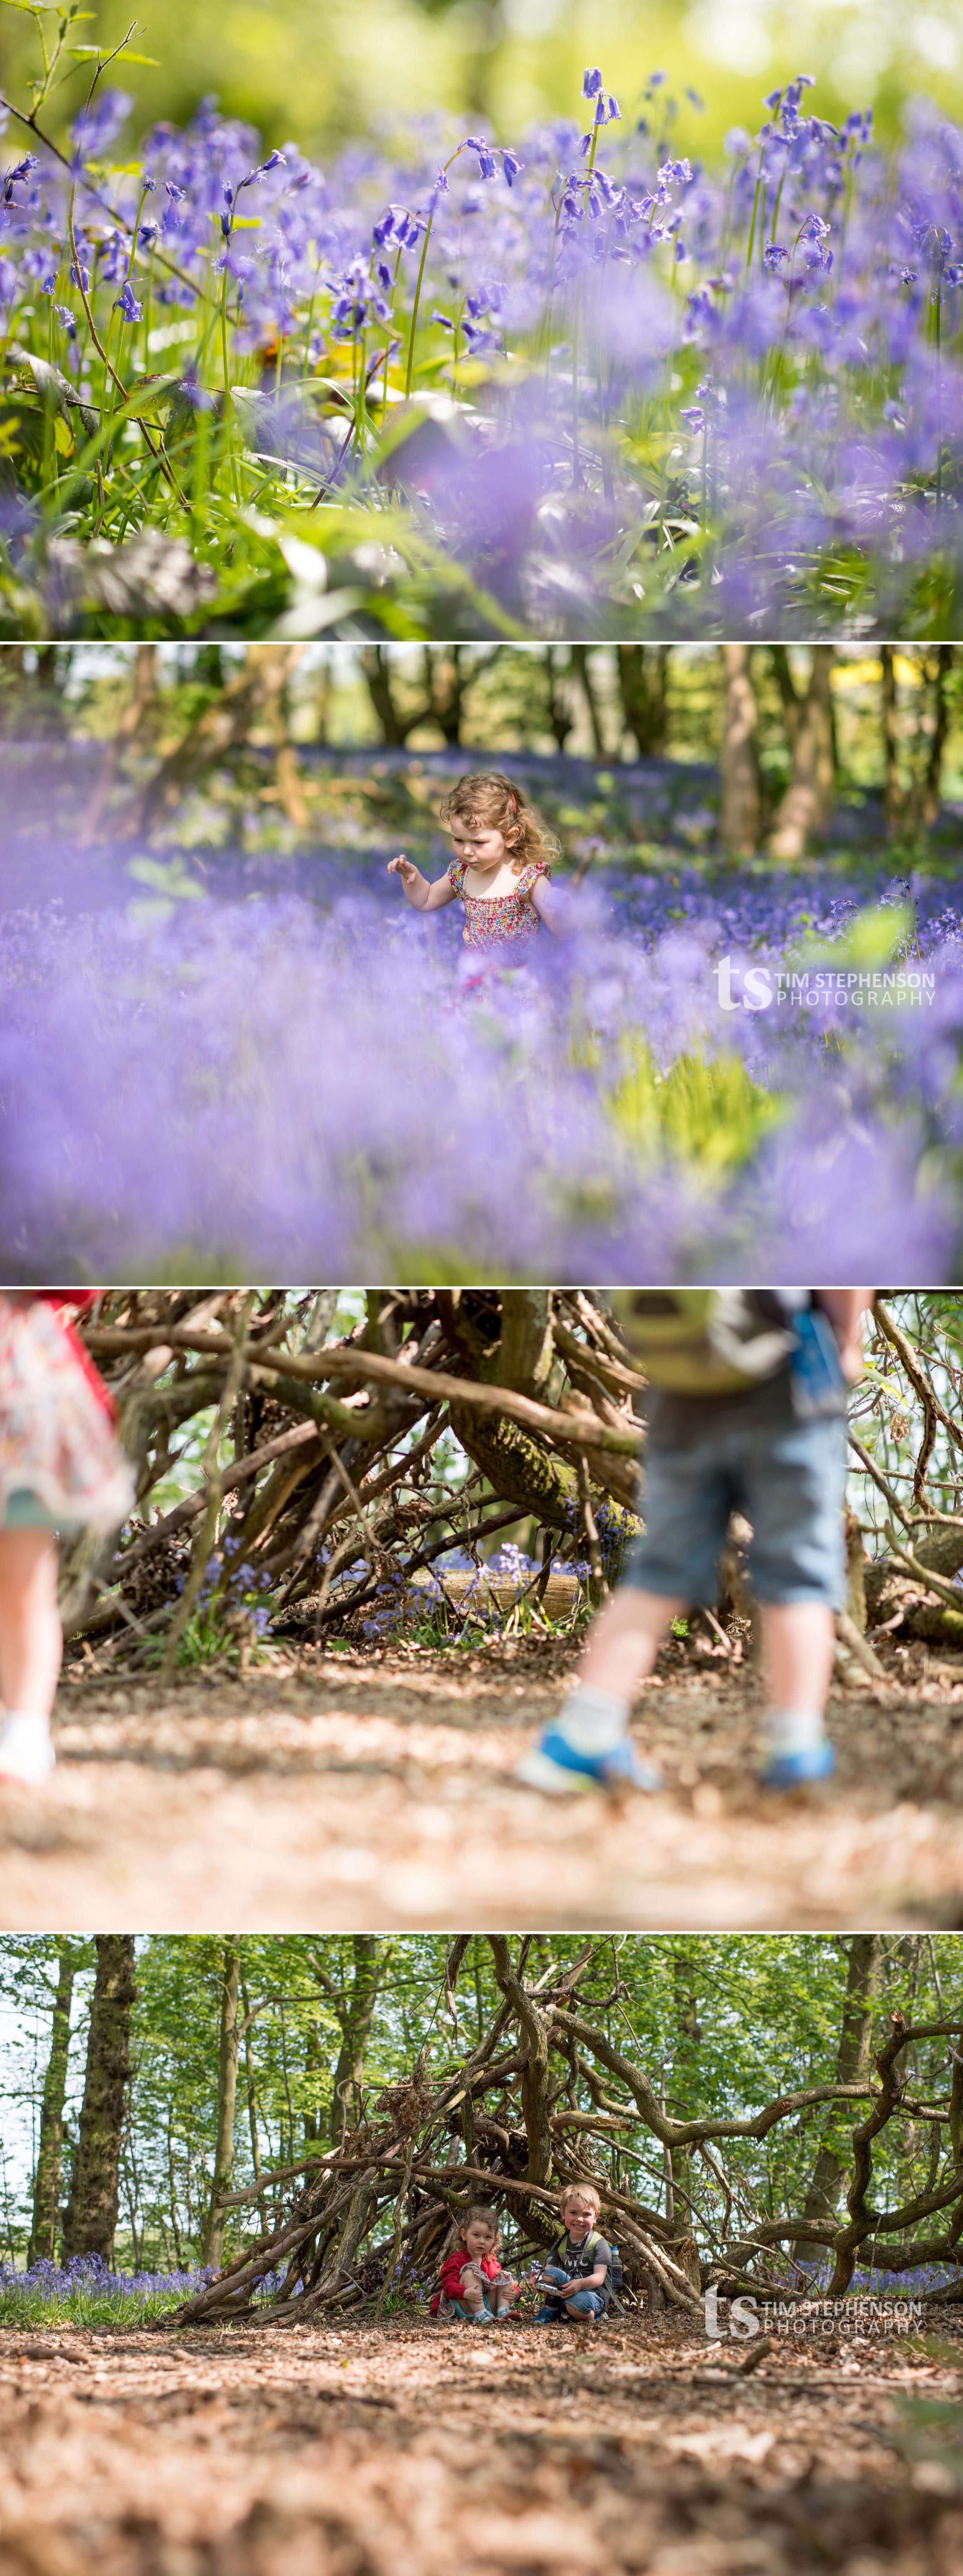 TimStephensonPhotography_Bluebells2016_1 copy